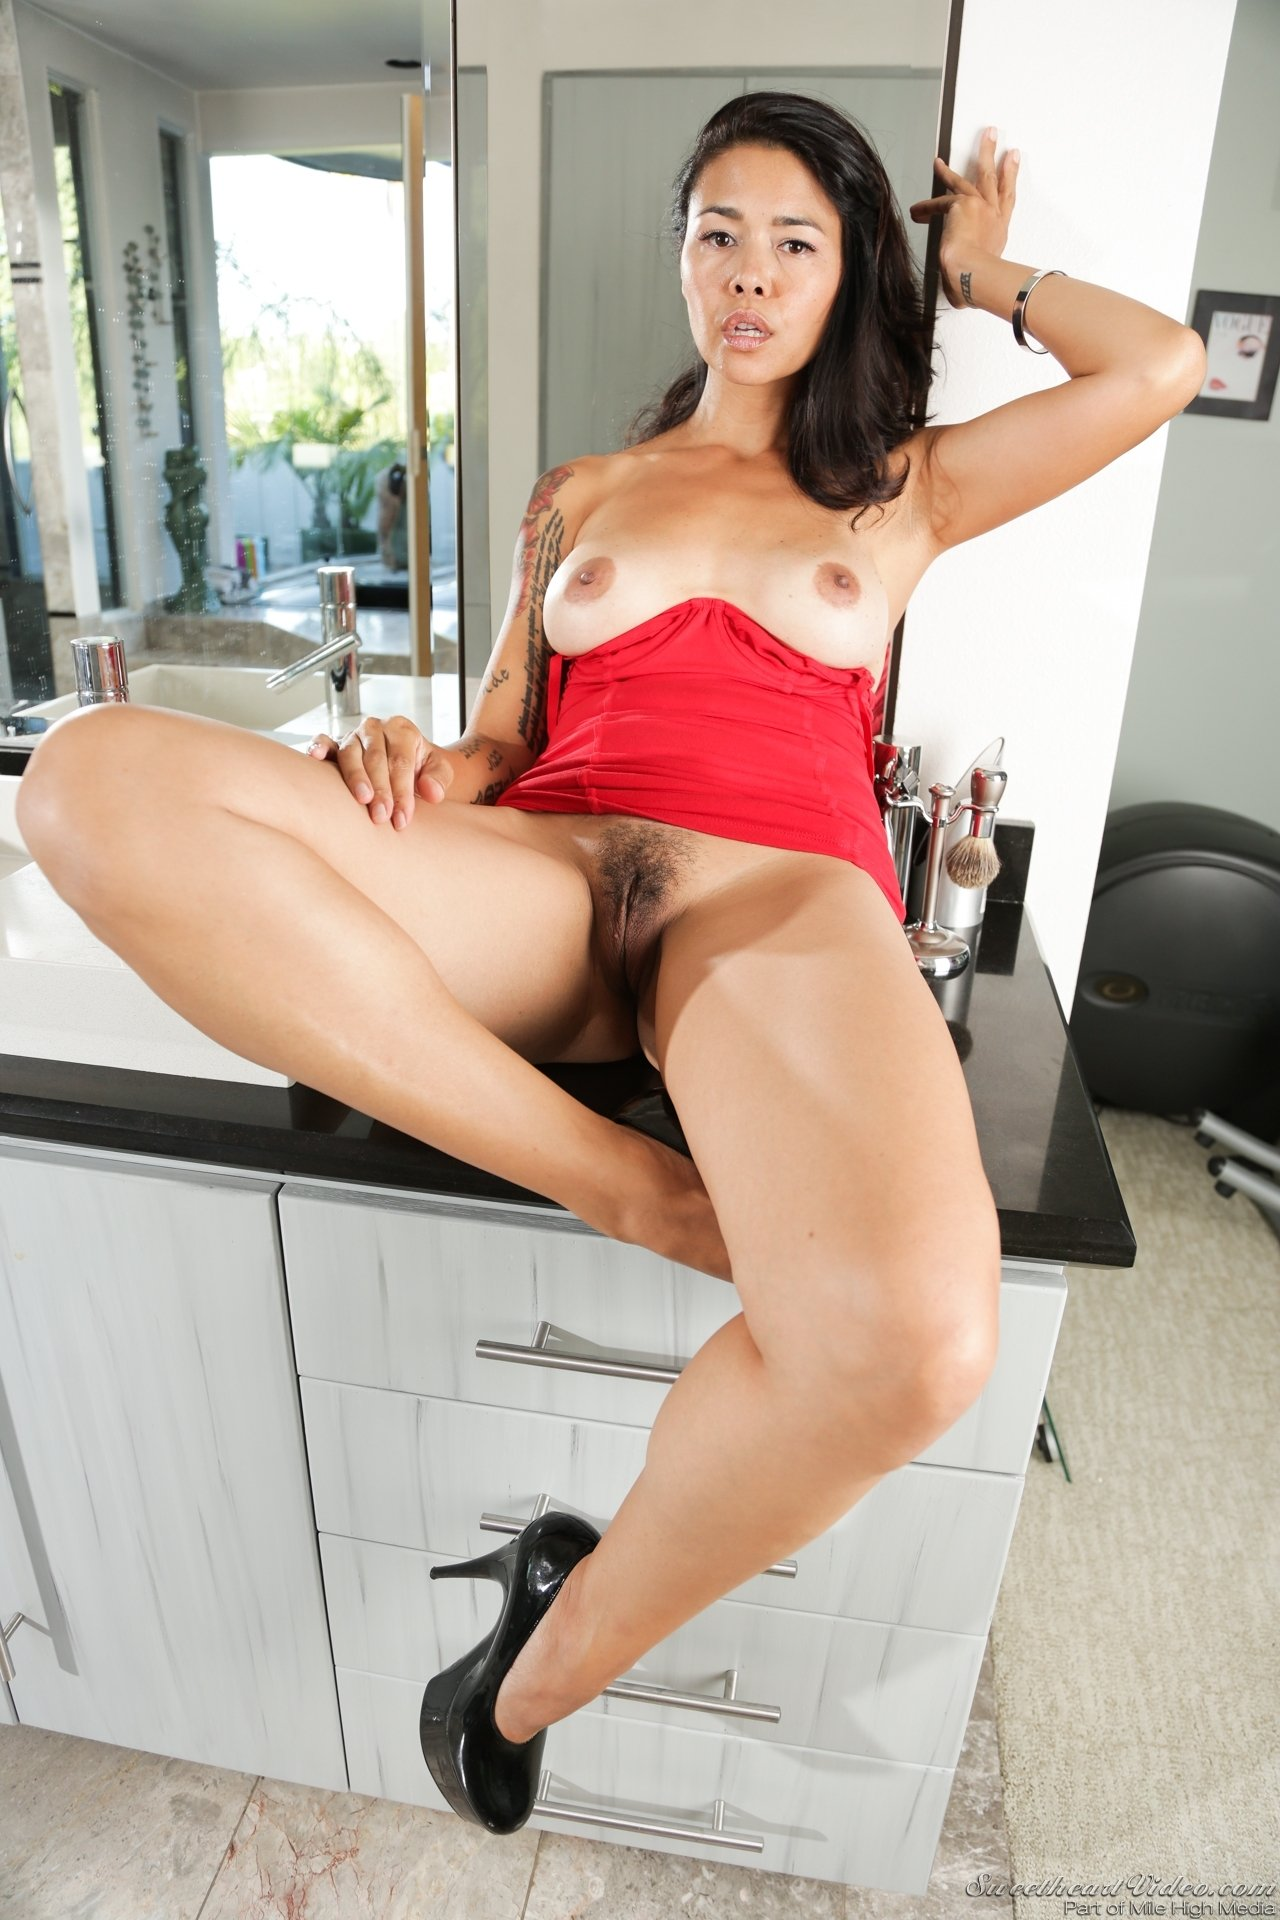 Neve cambell porn